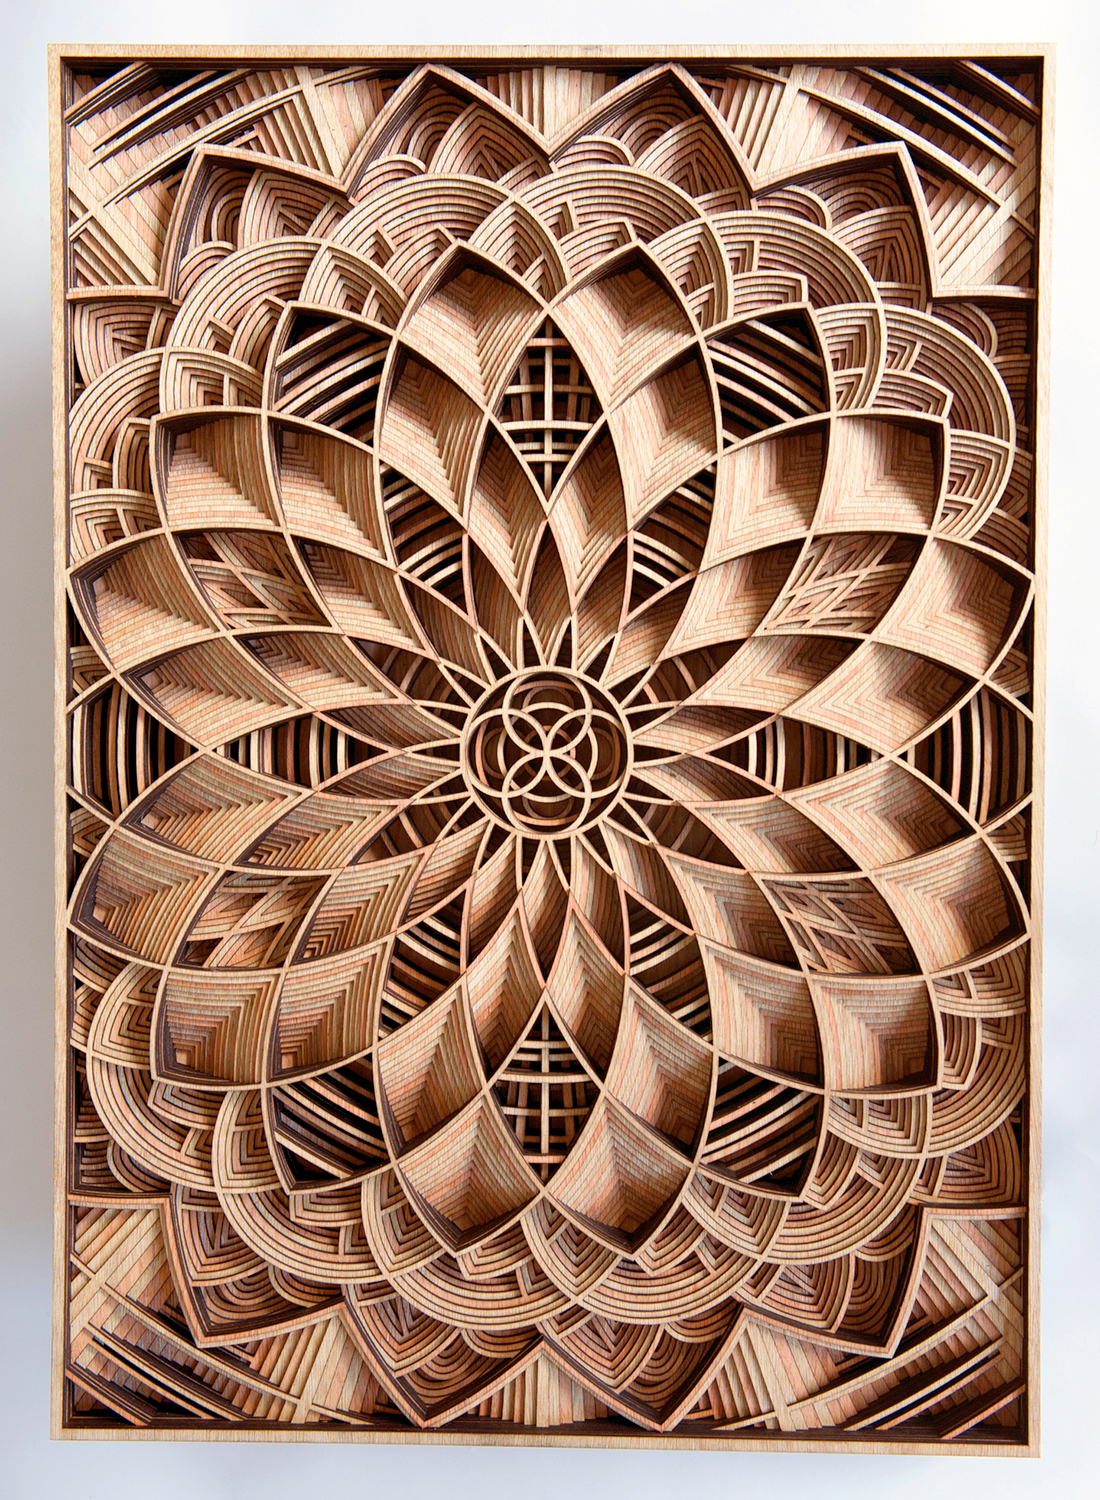 Discover Wooden Art Works Of Astonishing Precision Made Using Laser-13